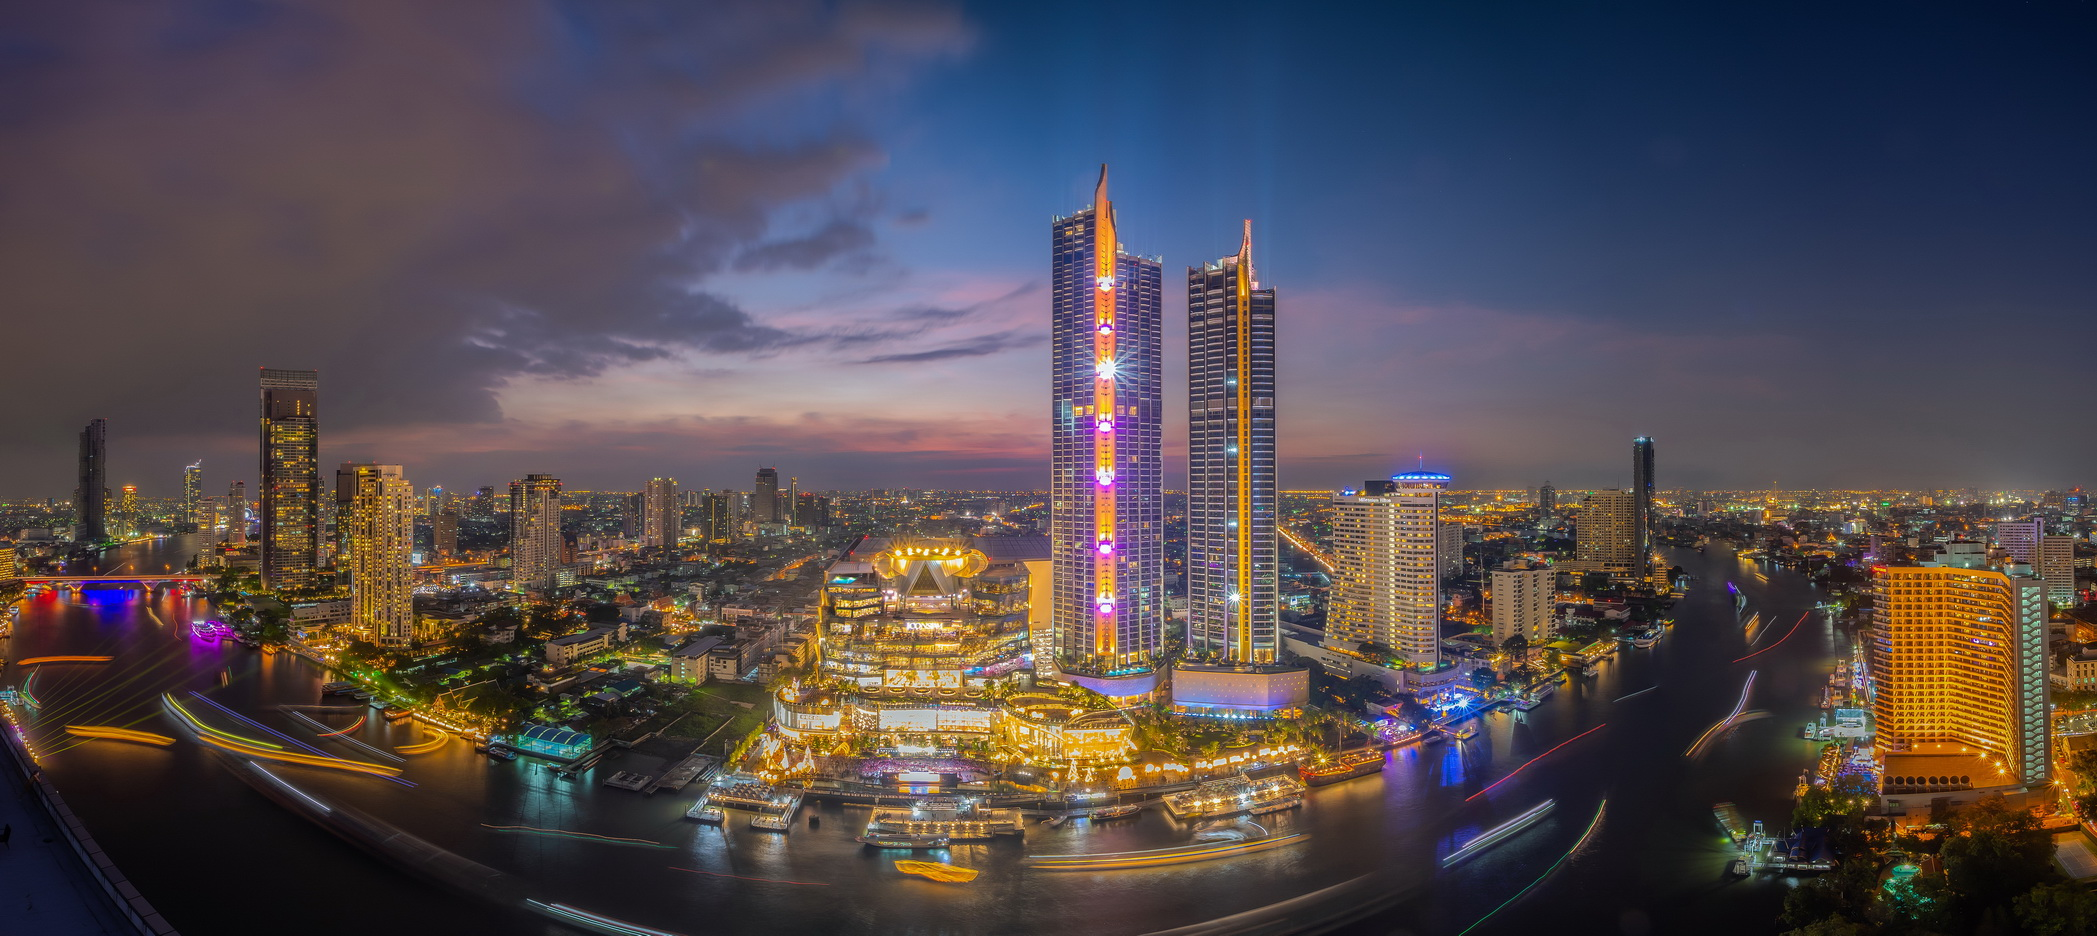 7 incredible attractions at ICONSIAM that will amaze you